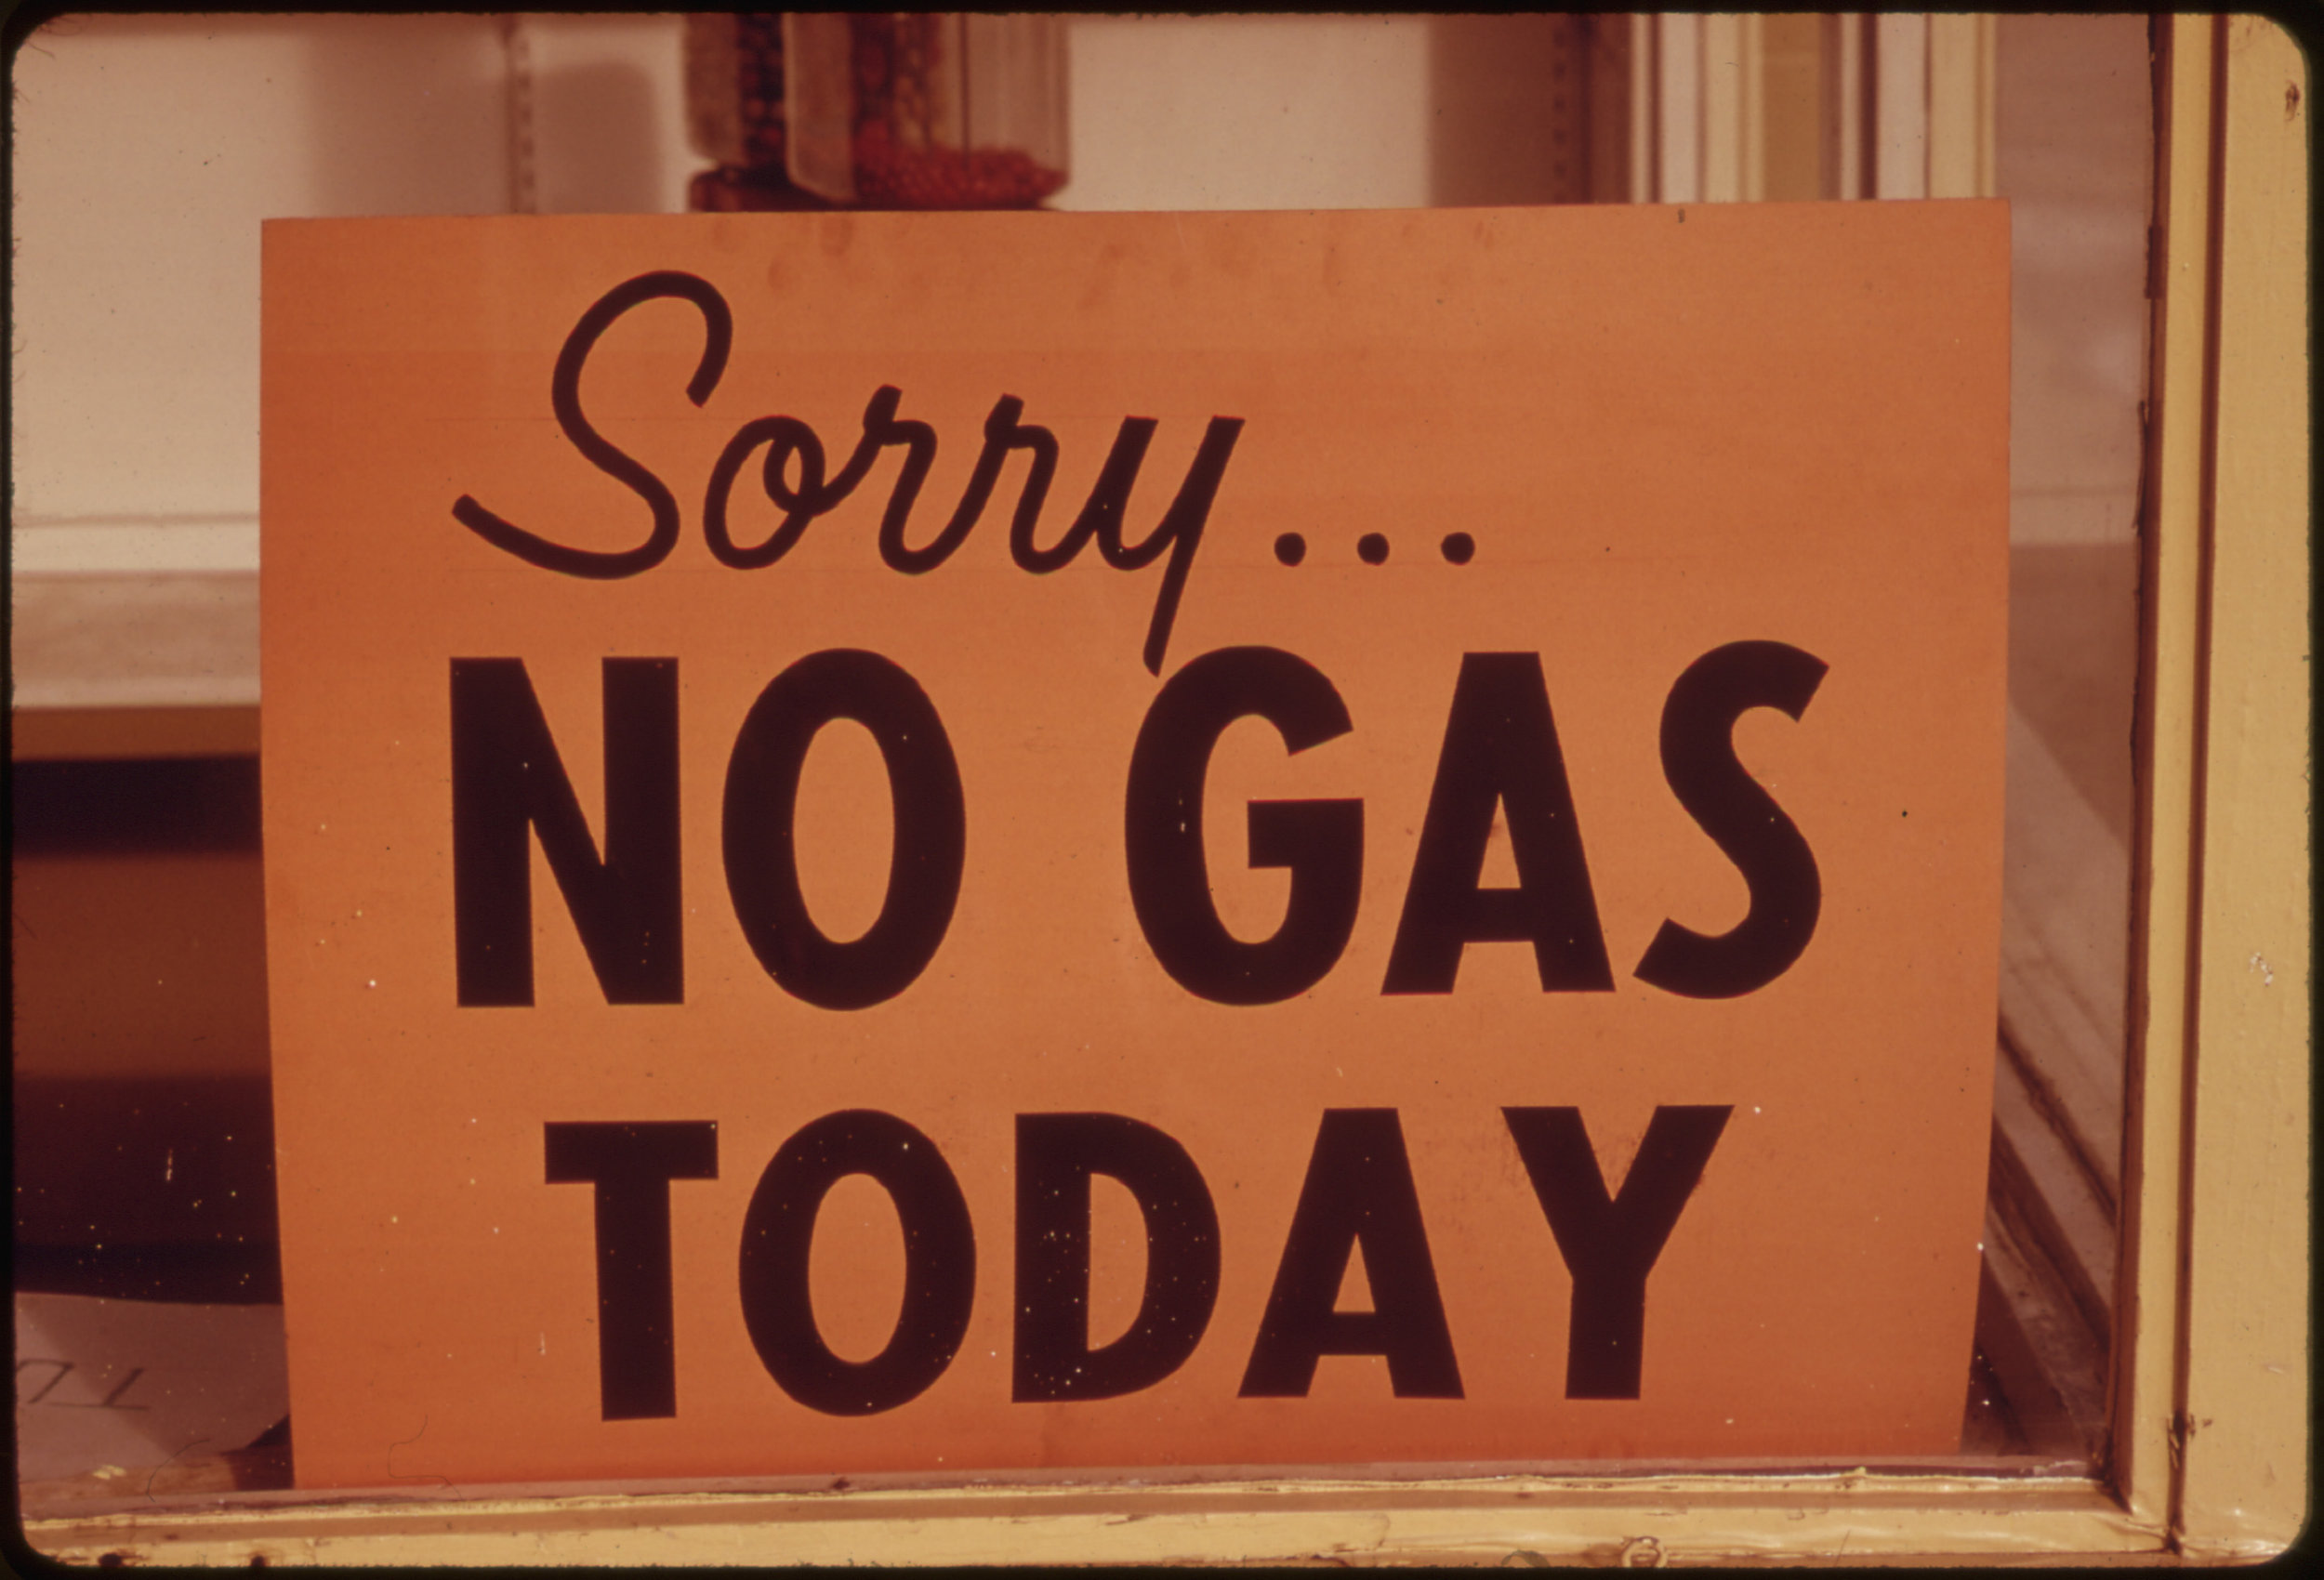 A much too frequent sign from the early 1970's. Image via Wikimedia and the National Archives.